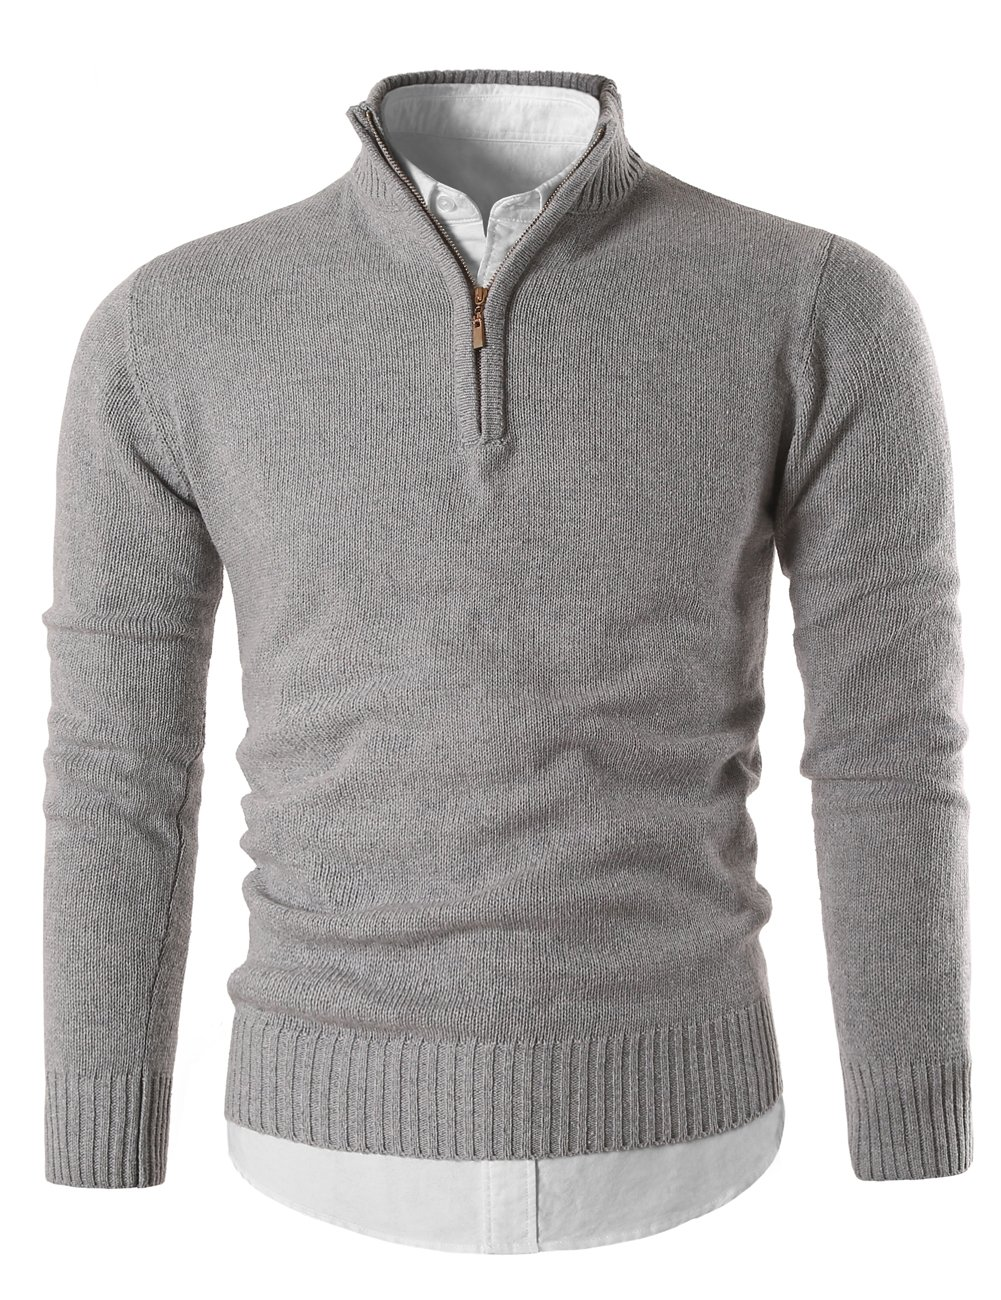 MIEDEON Mens Slim Fit Zip up Mock Neck Polo Sweater Casual Long Sleeve Sweater and Pullover Sweaters with Ribbing Edge (LightGray, M)